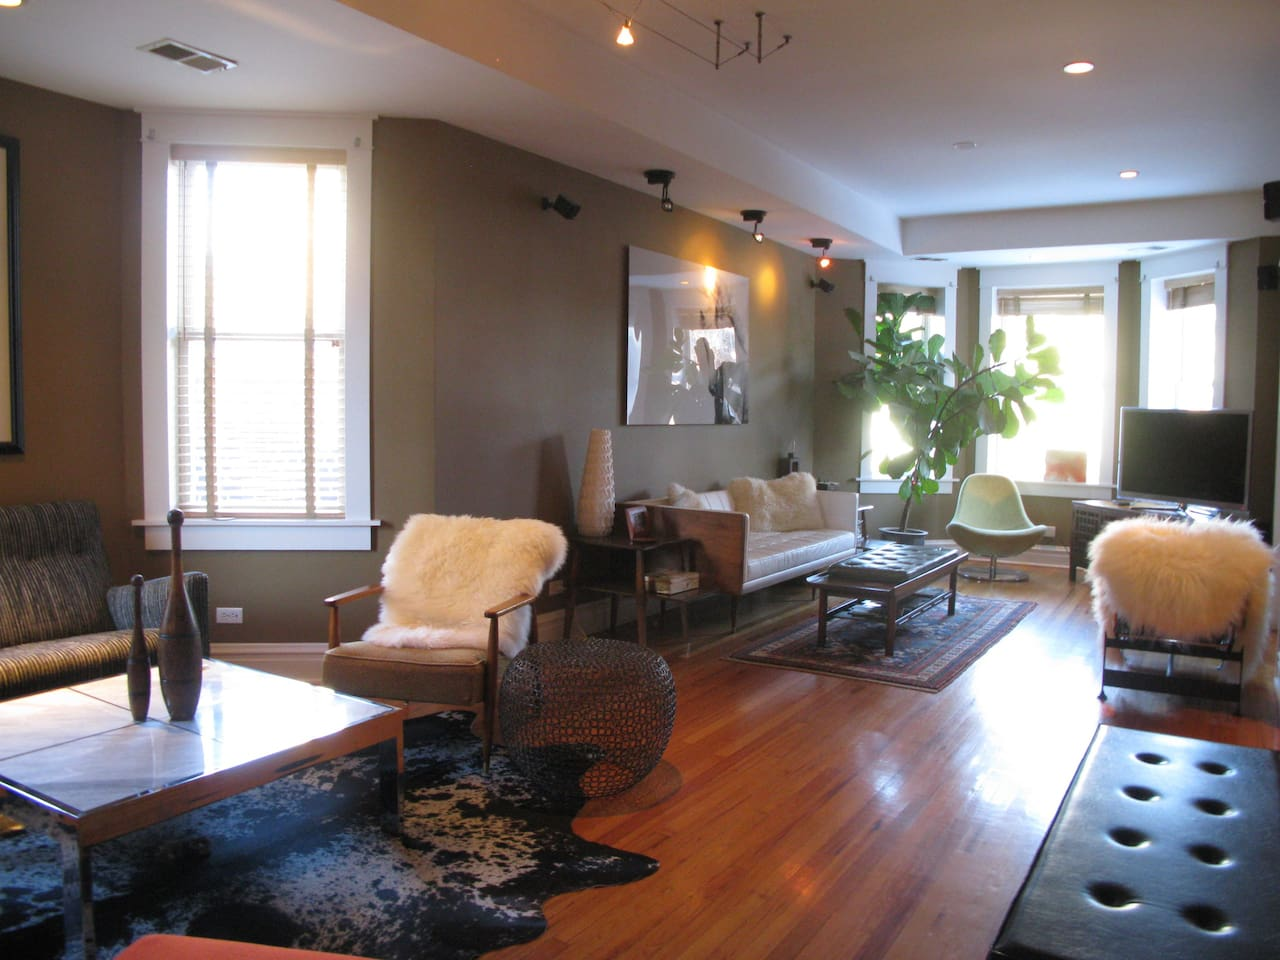 View of the den area and living room.